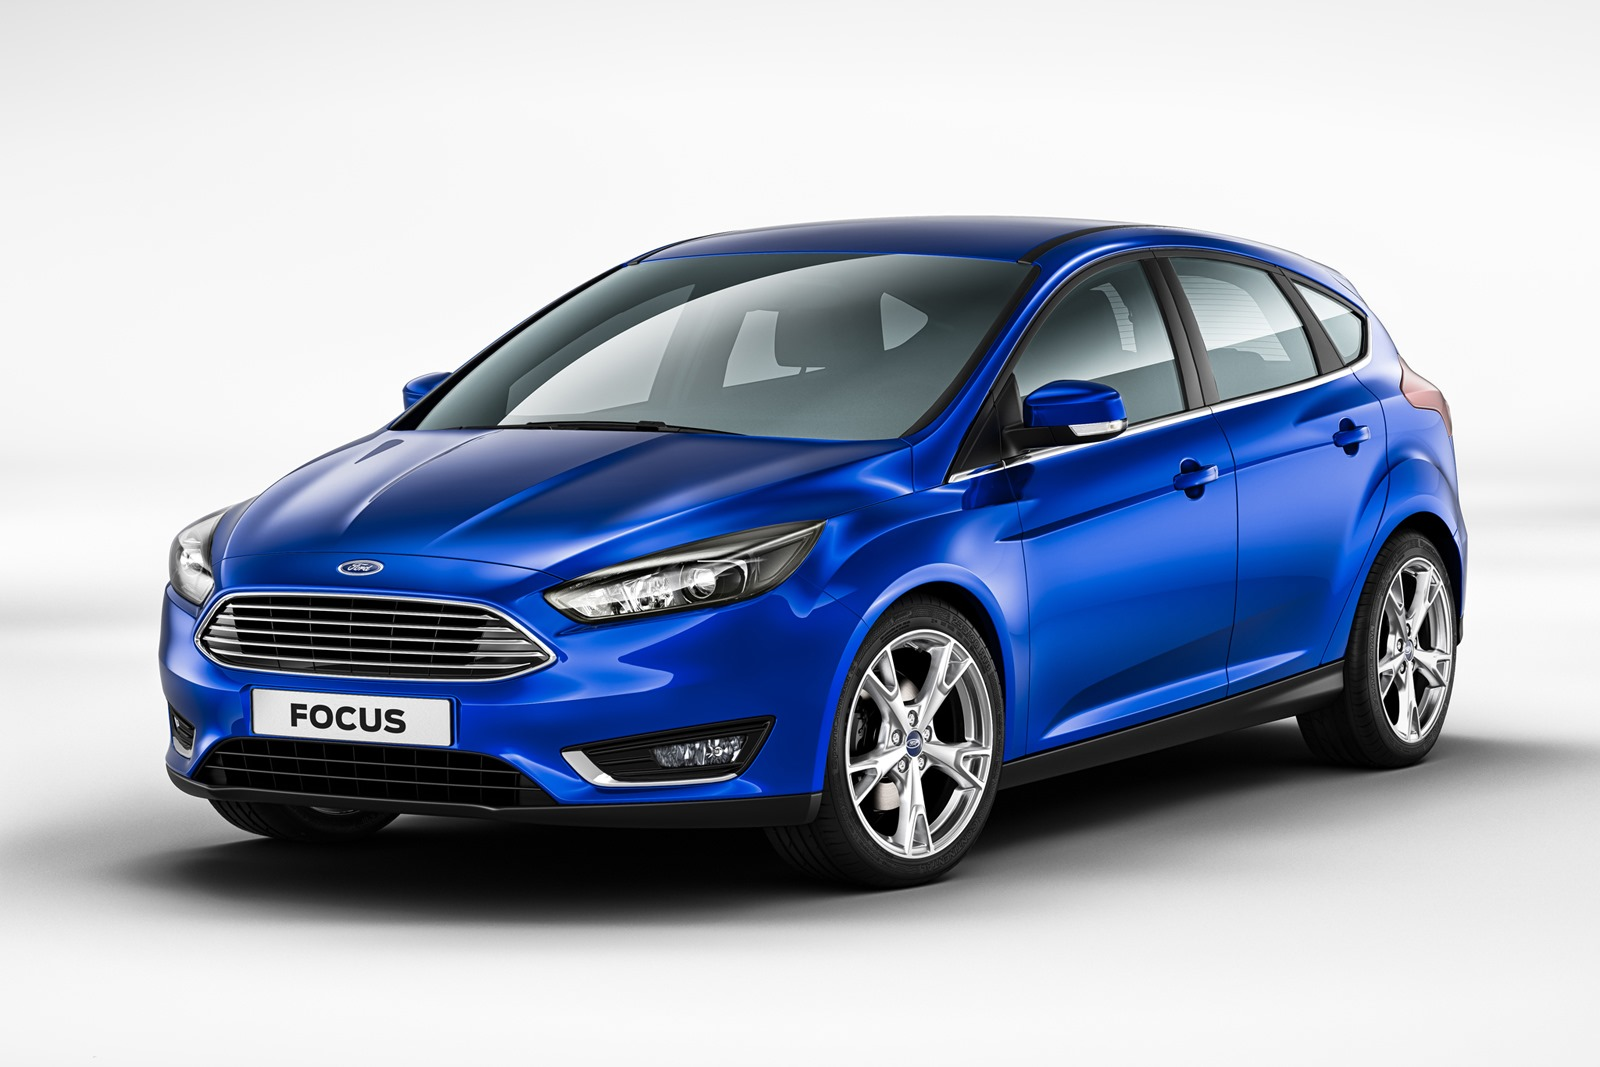 2018 Ford Fiesta ECOnetic photo - 1